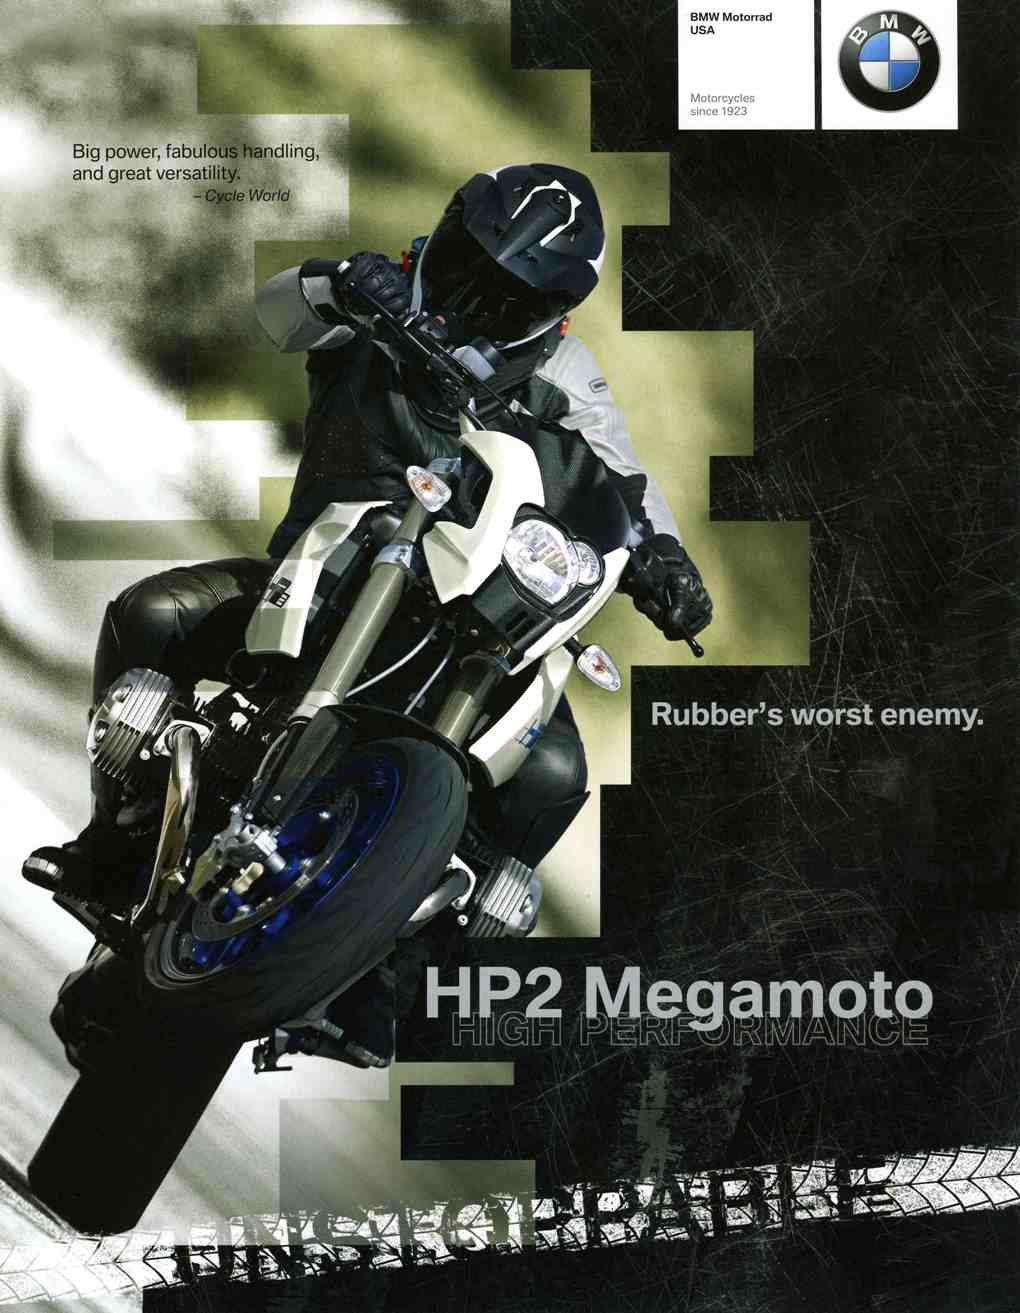 Brochure - 2009 HP2 Megamoto Brochure